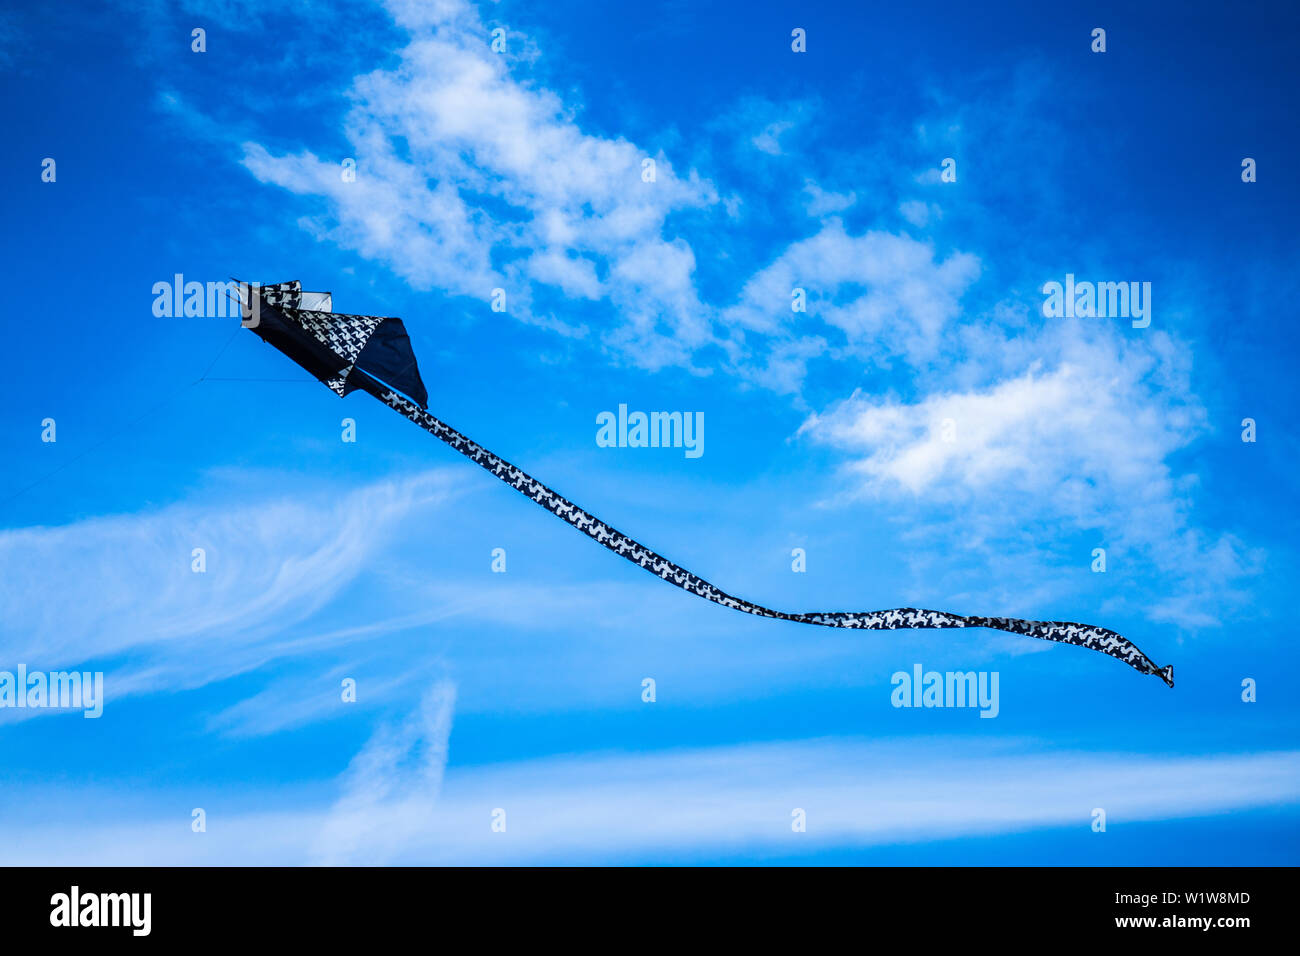 Bedford,Bedfordshire,UK,June 2,2019. Kites flying in the sky among the clouds.Bedford International Kite Festival. Stock Photo